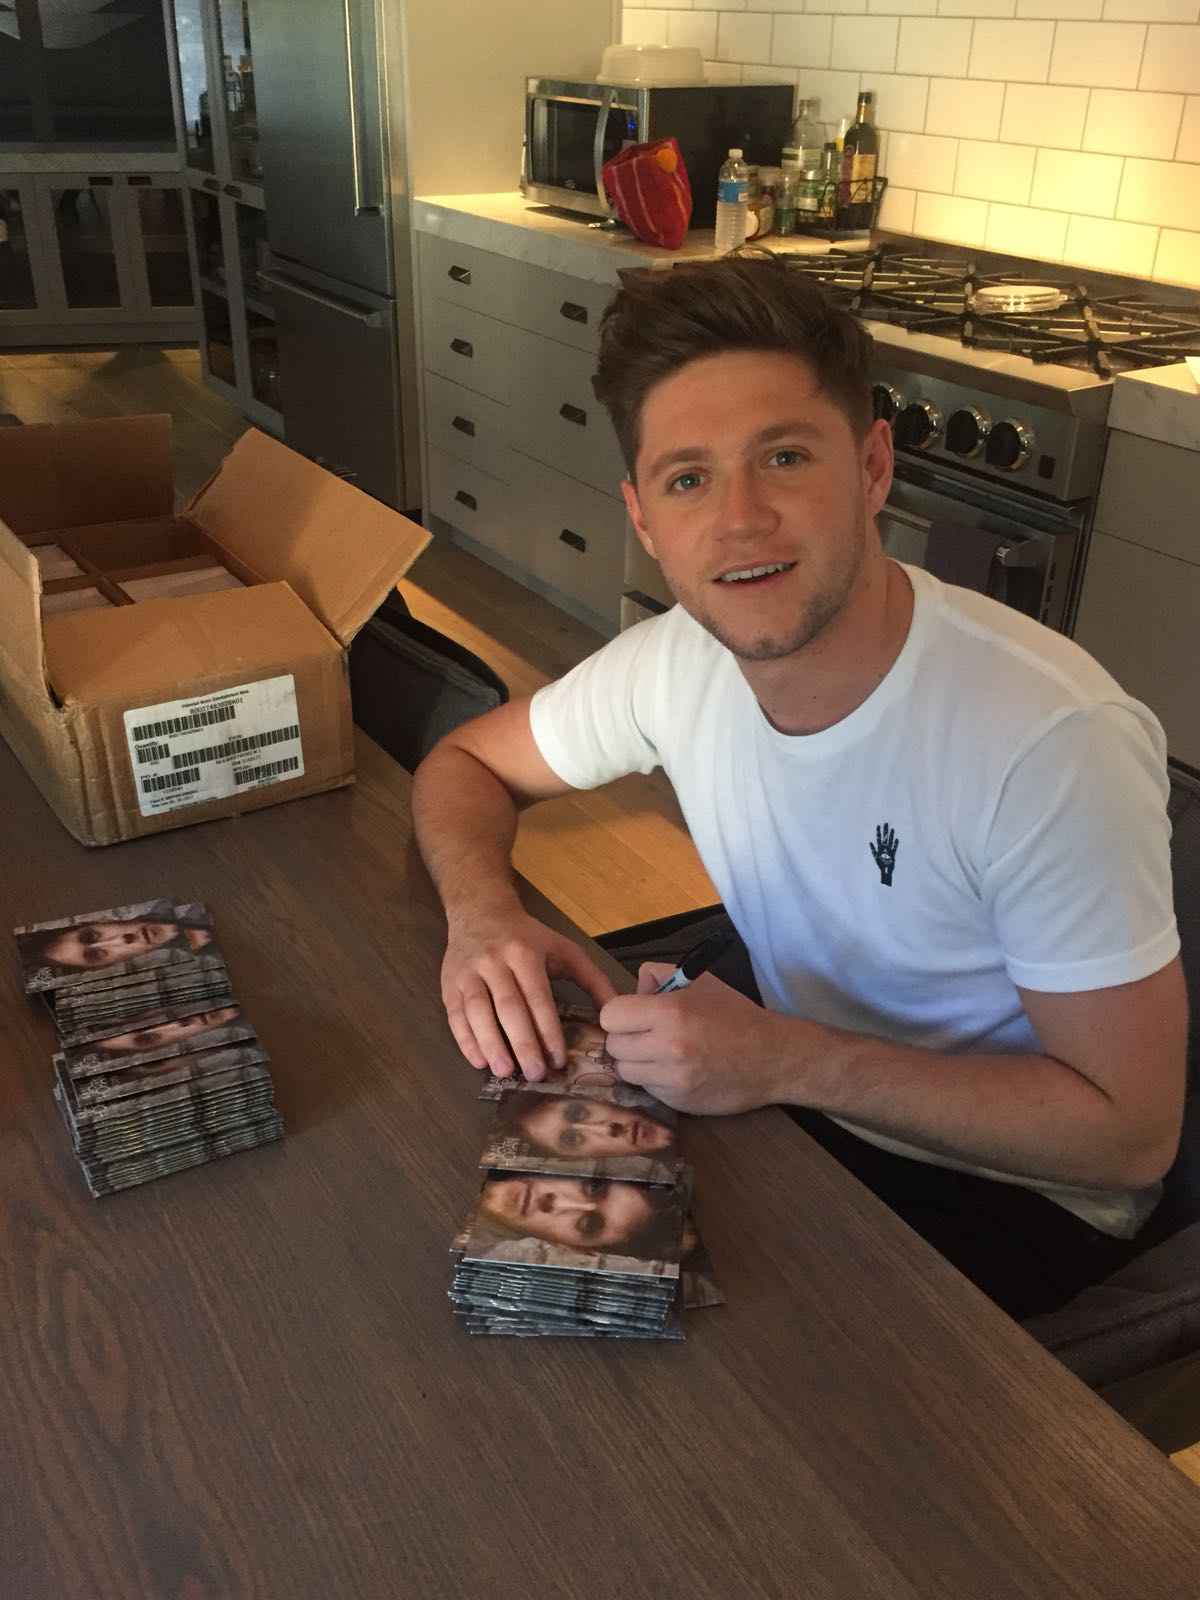 Signed some more #Flicker albums for ya ! Get them here https://t.co/fOogfV8zAI https://t.co/BYUGUhgYvu